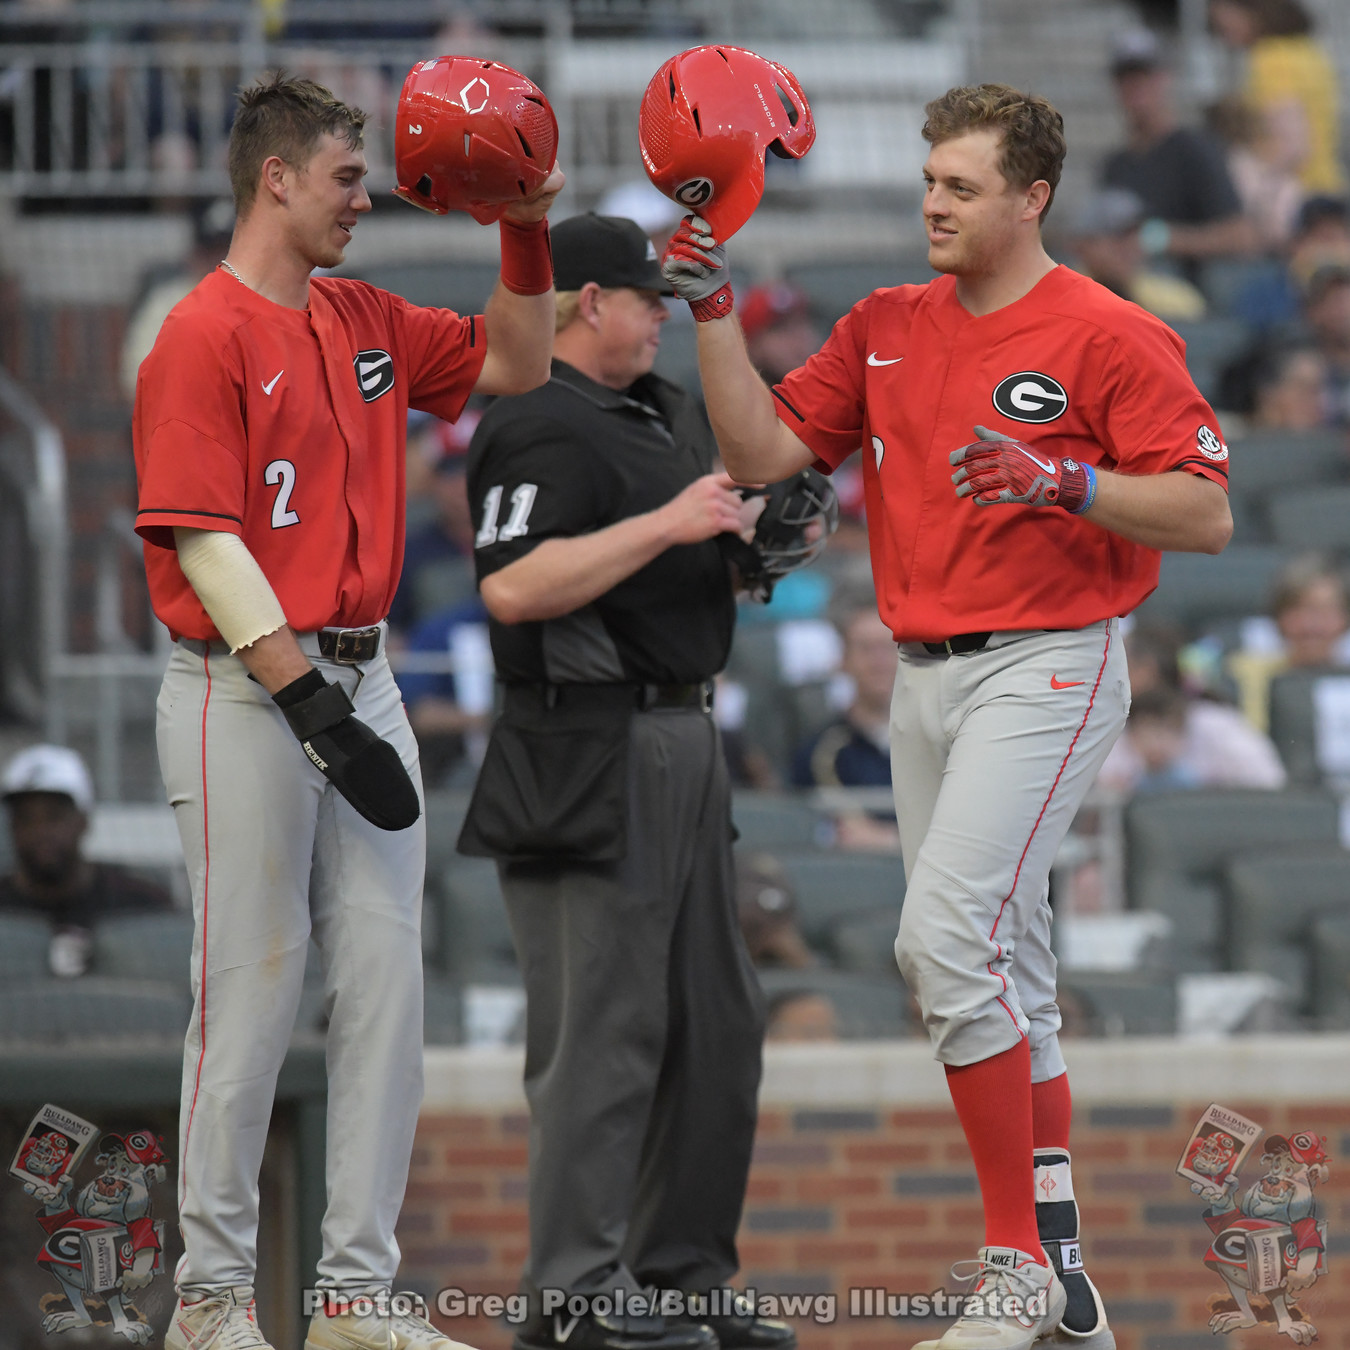 LJ Talley and John Cable celebrate Cable's homer run